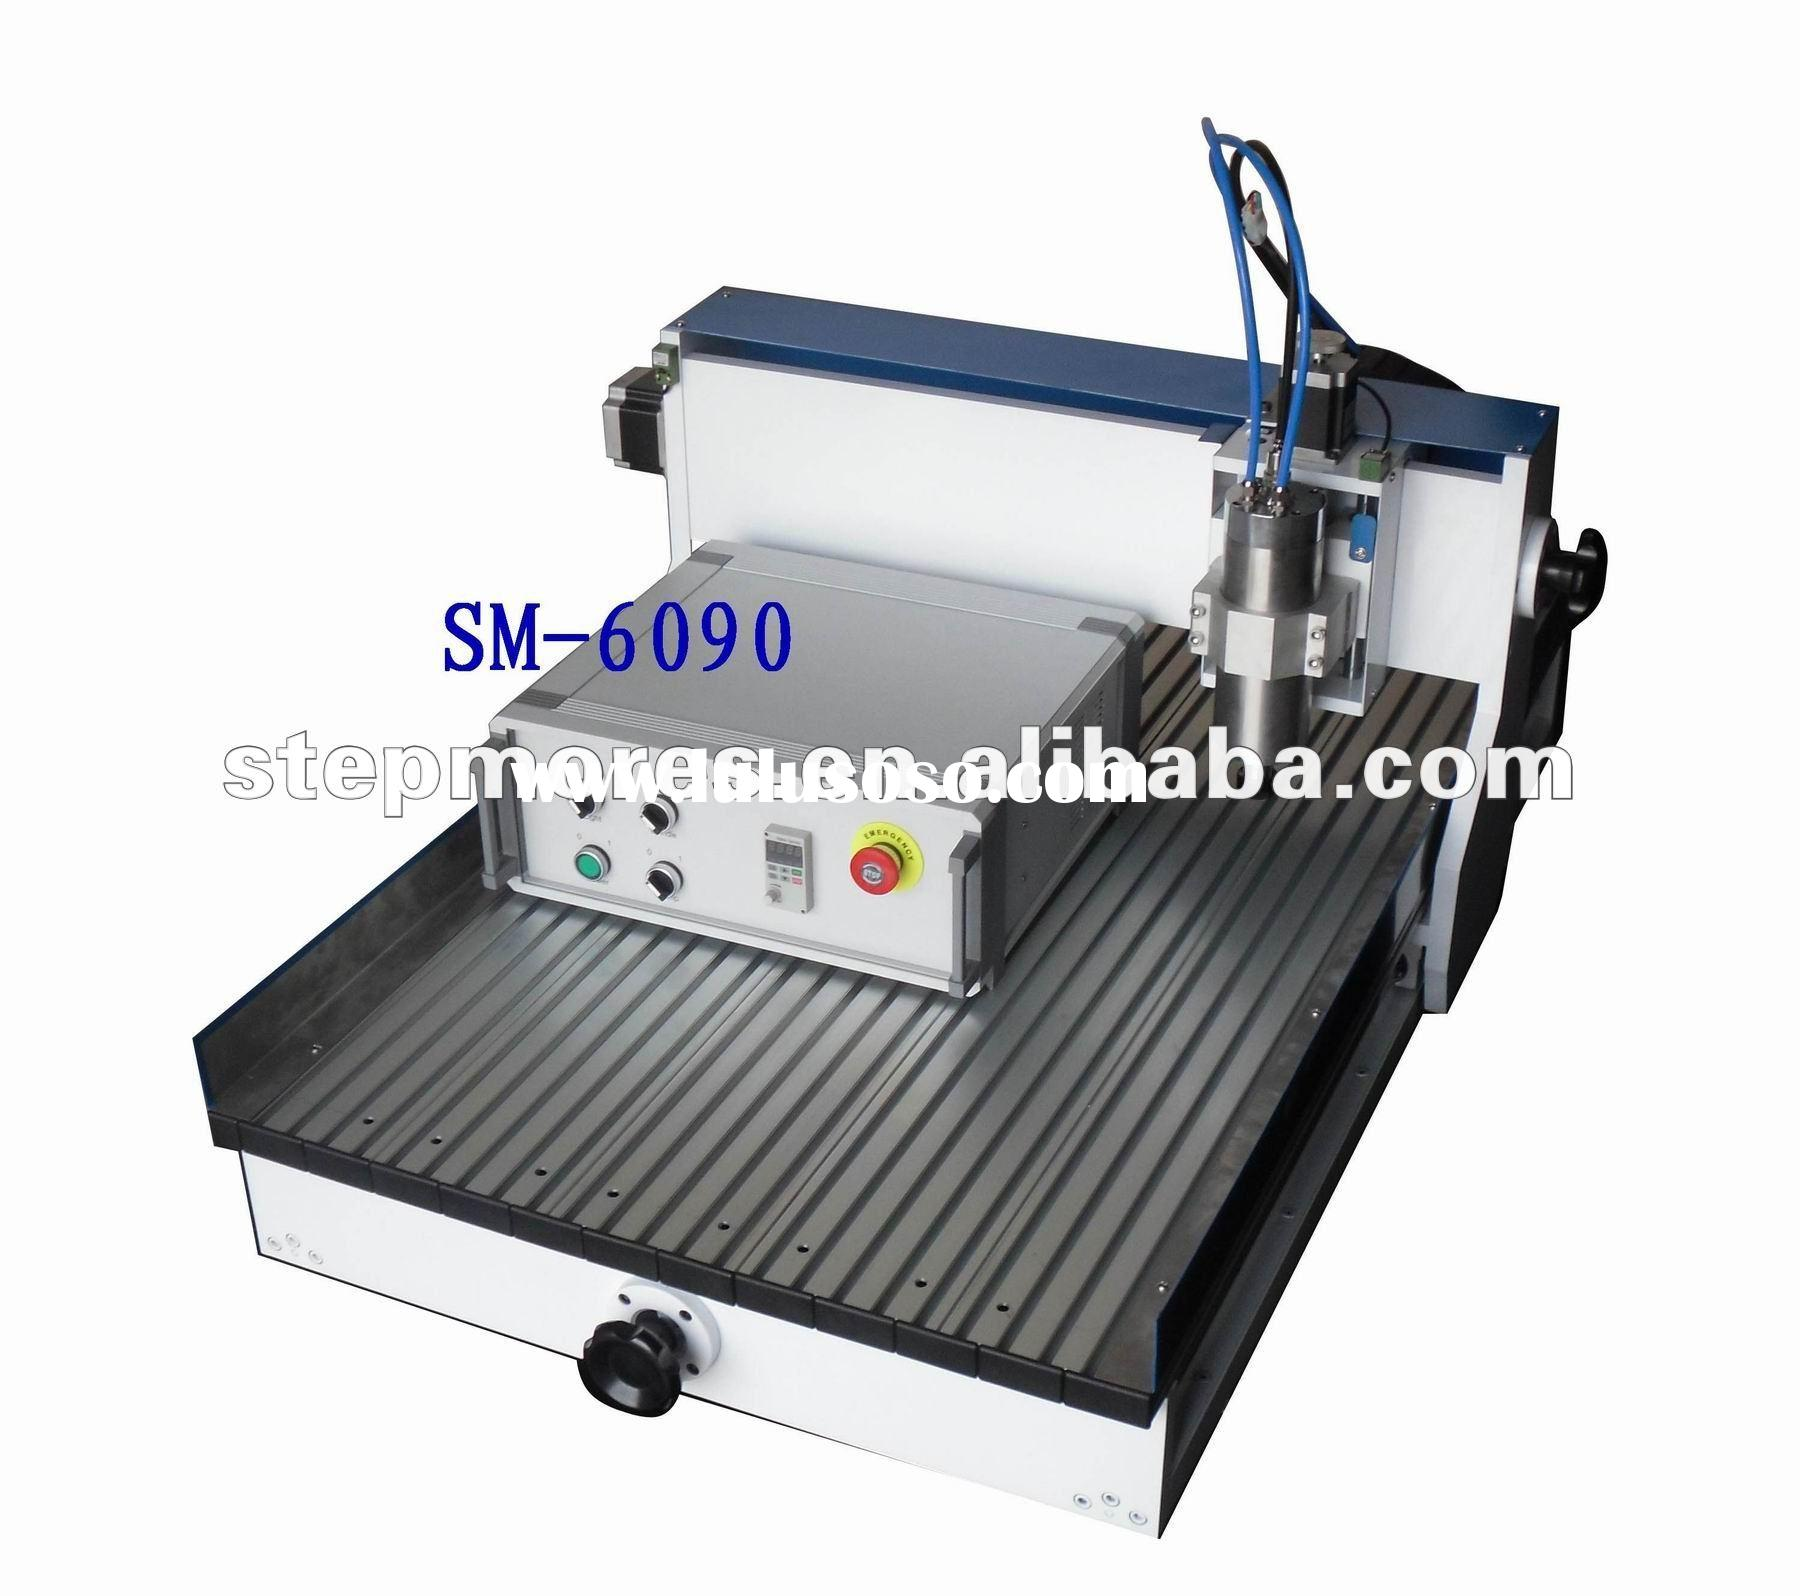 Small CNC Router 6090 with low price